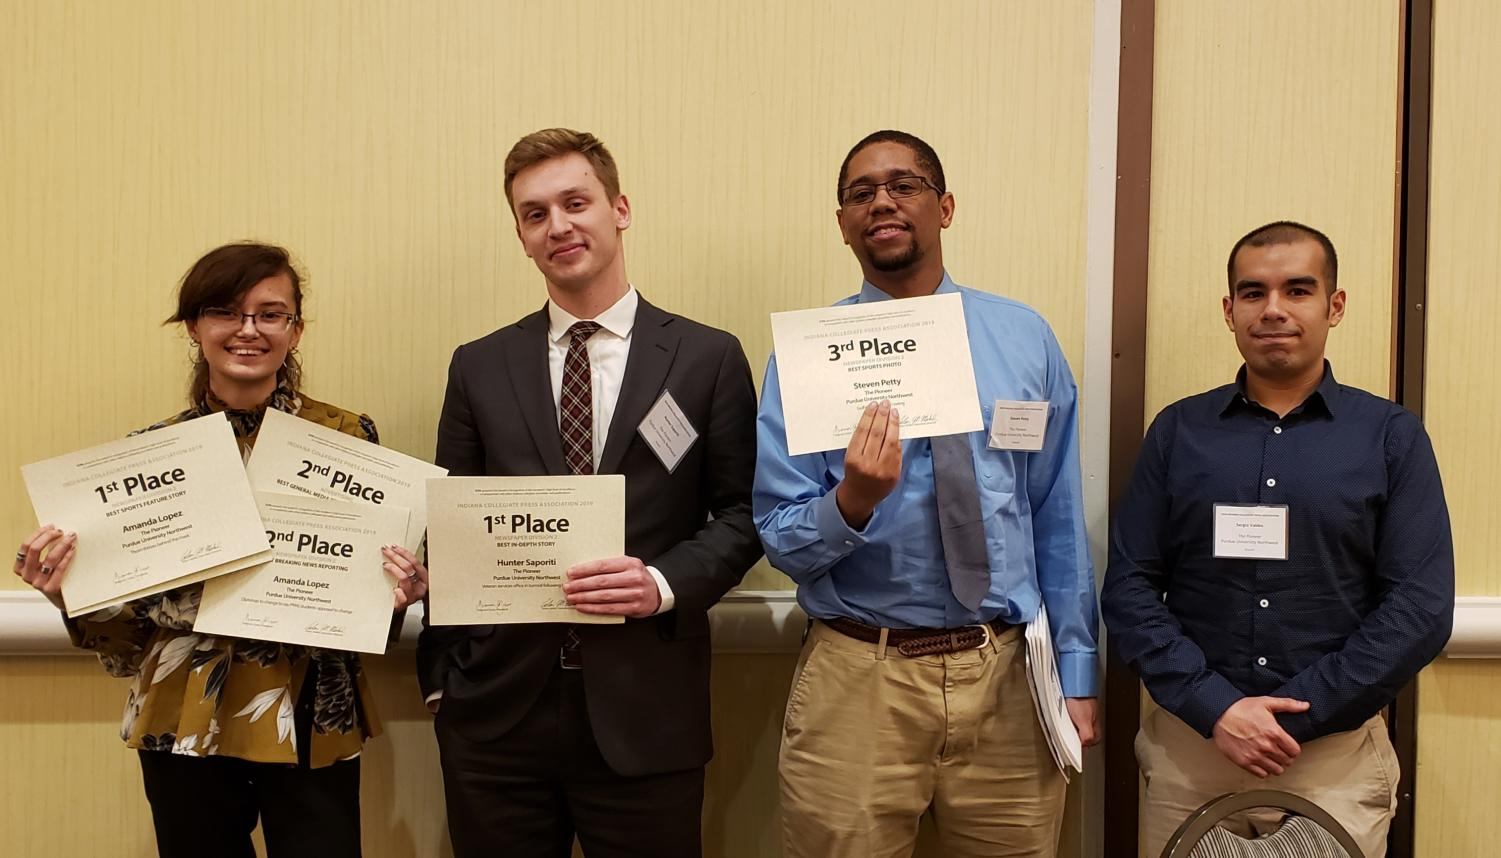 Five of The Pioneer staff members won awards at the Indiana Collegiate Press Association competition on March 30.